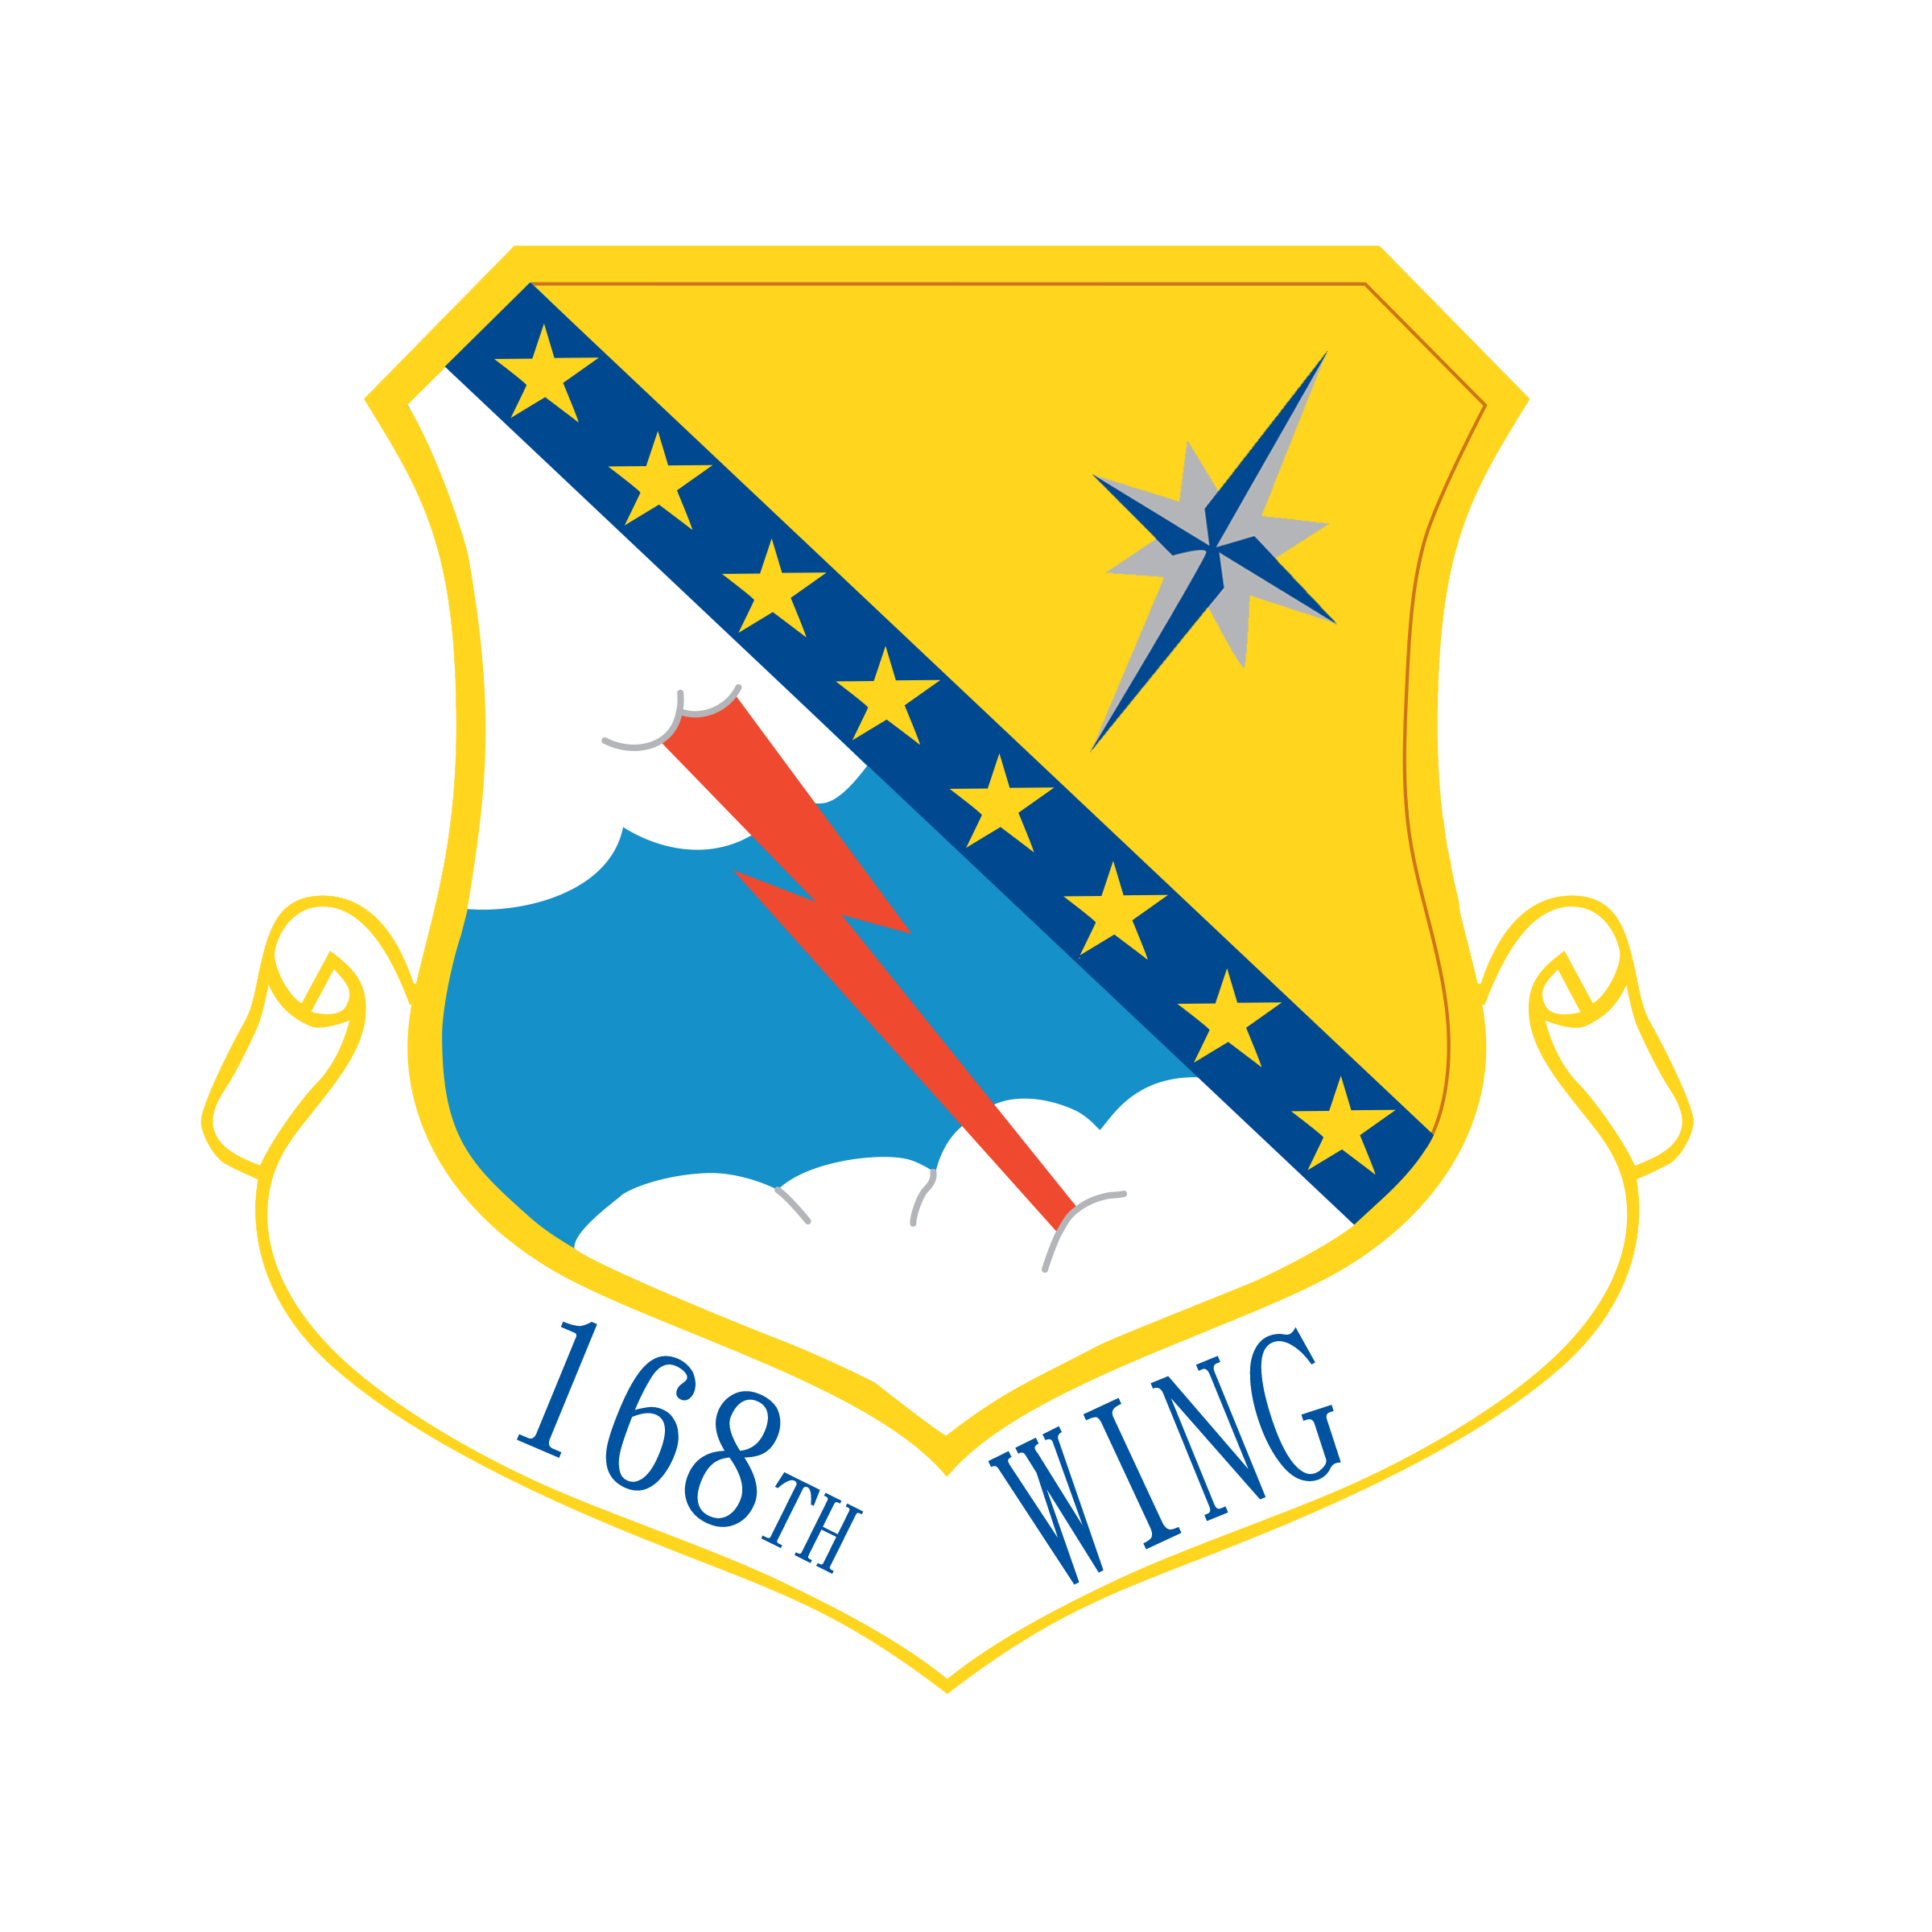 168th Wing